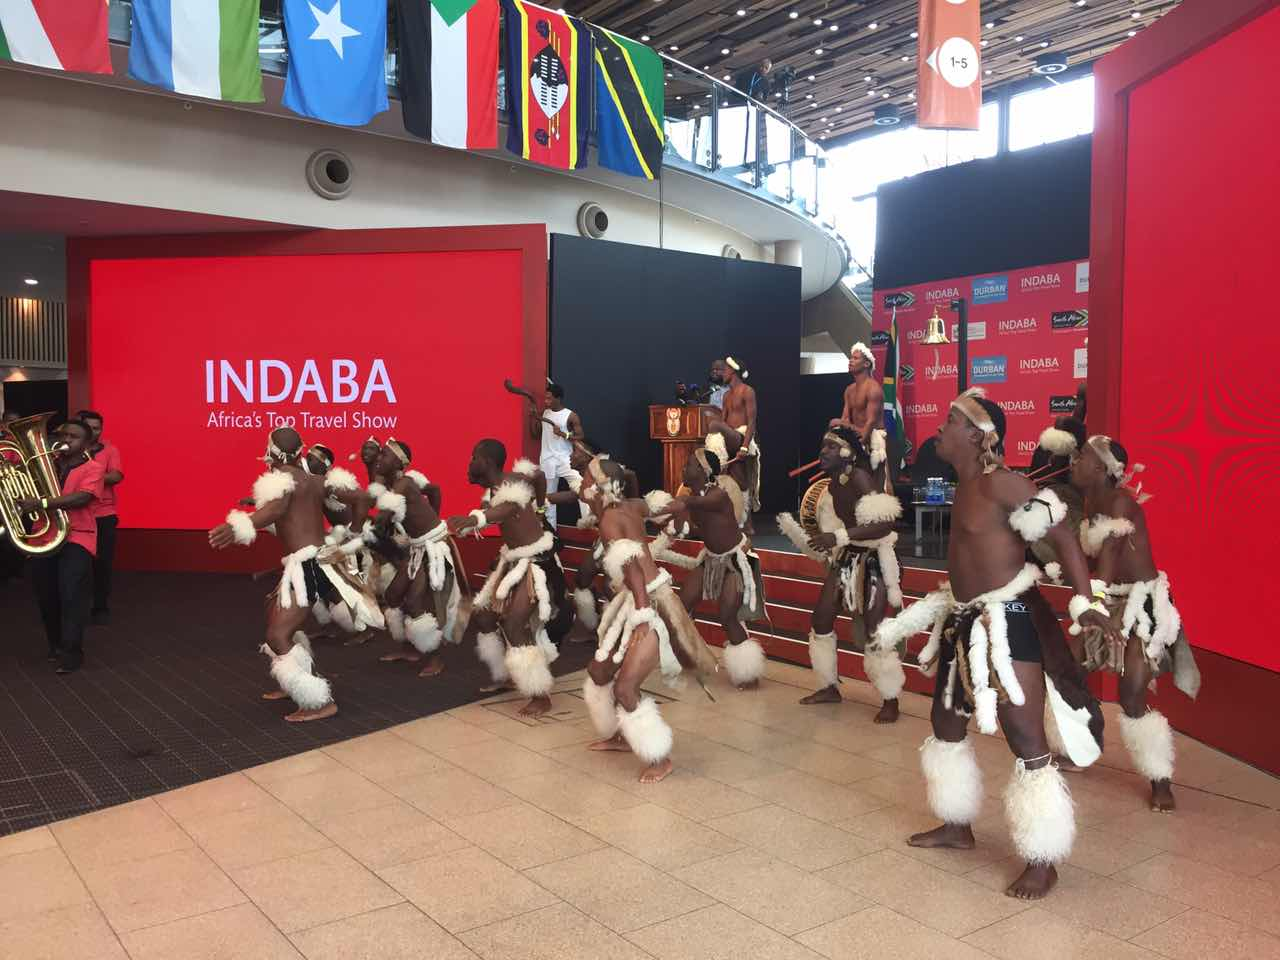 Durban Secures Indaba For Next Five Years